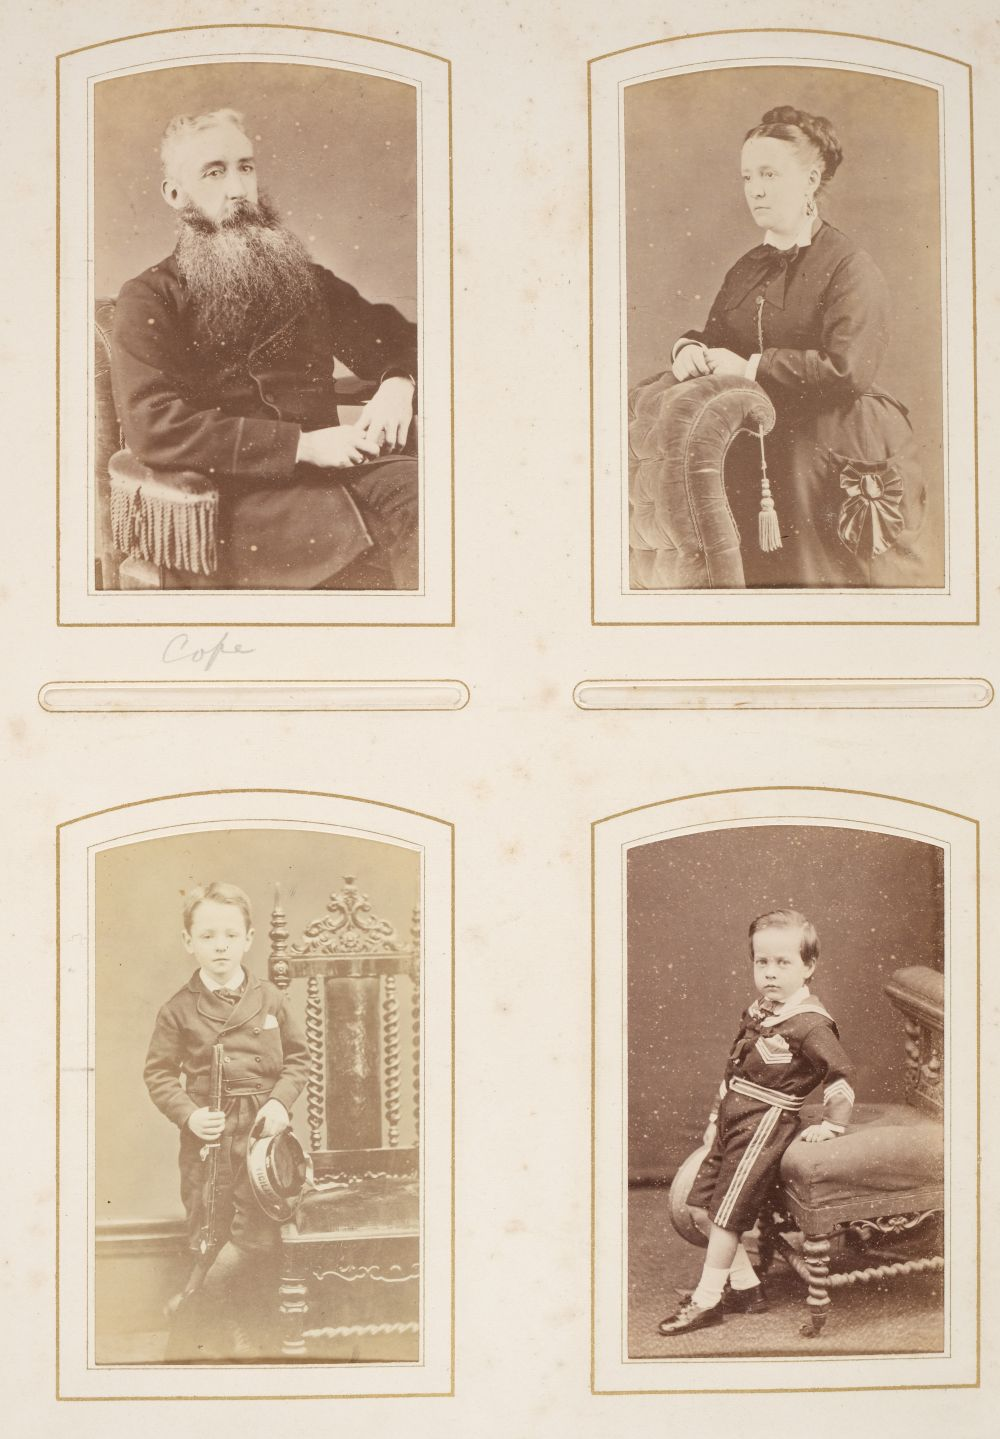 * Cartes de visite. A group of 3 albums of cartes de visite and cabinet cards - Image 18 of 26